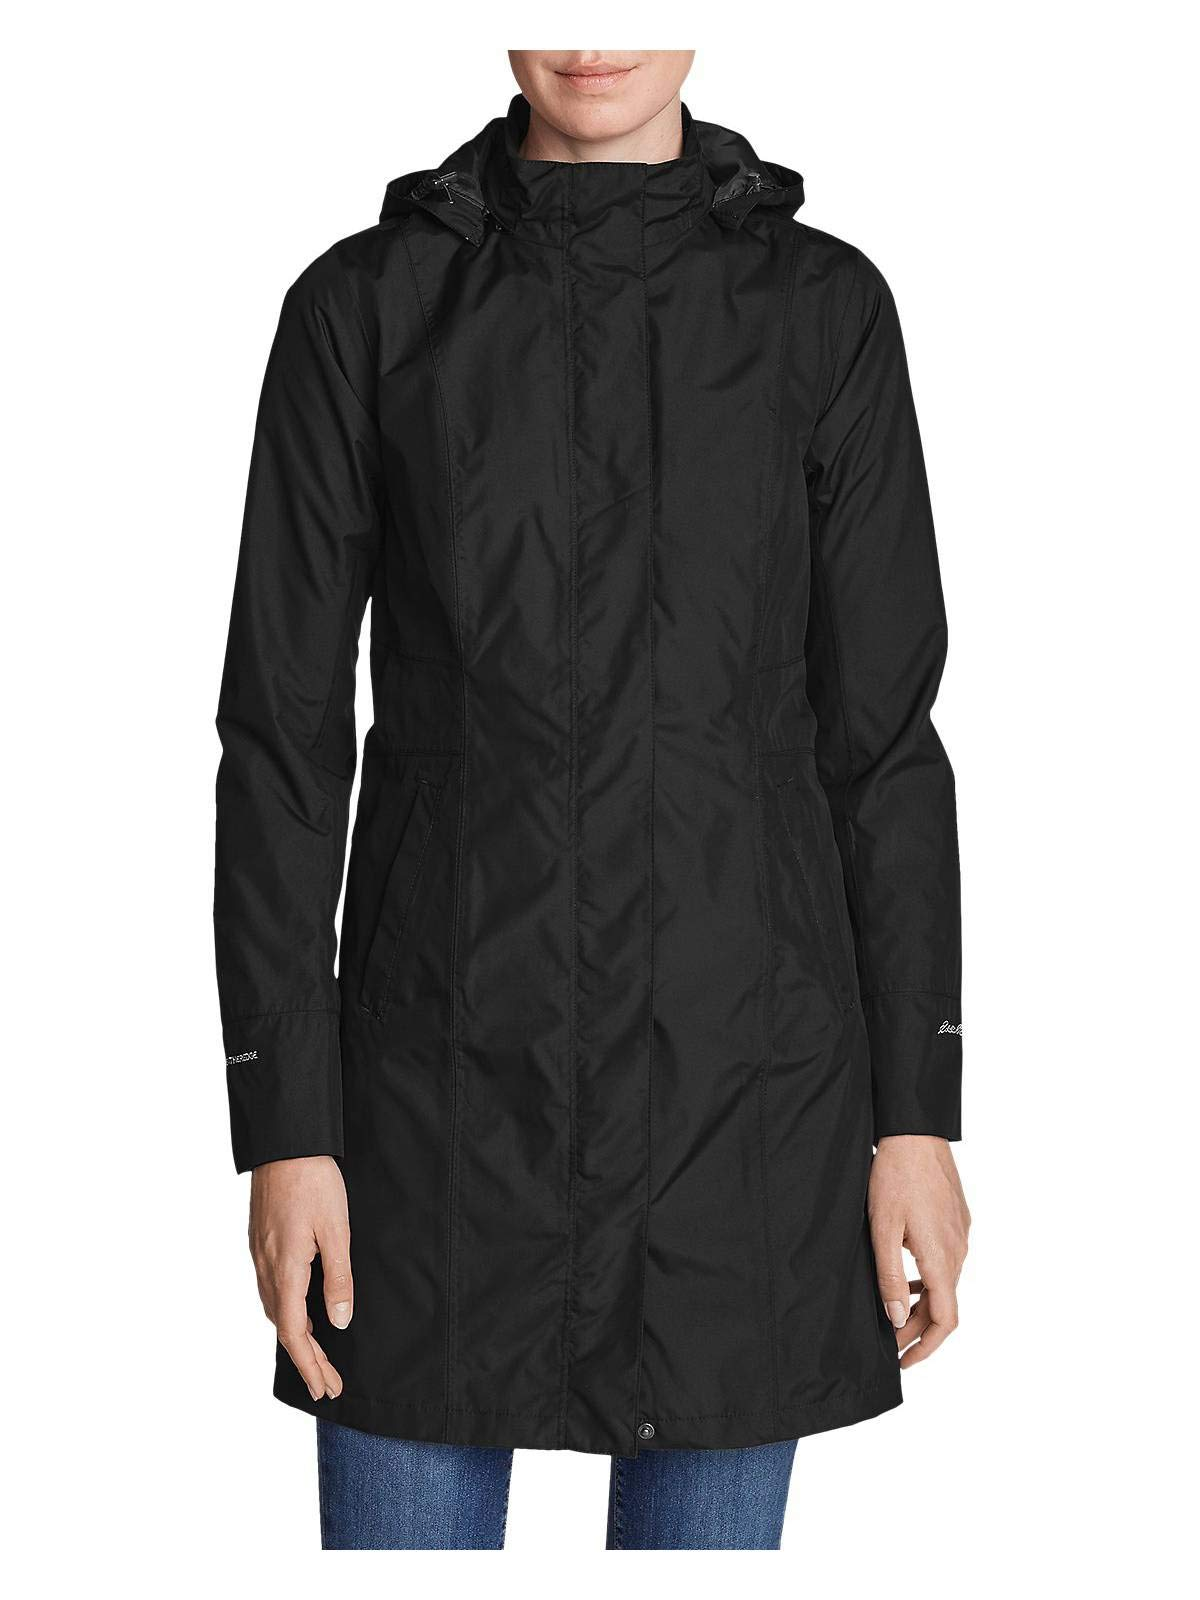 Eddie Bauer Women's Girl On The Go Insulated Trench Coat, Black Petite S Petite